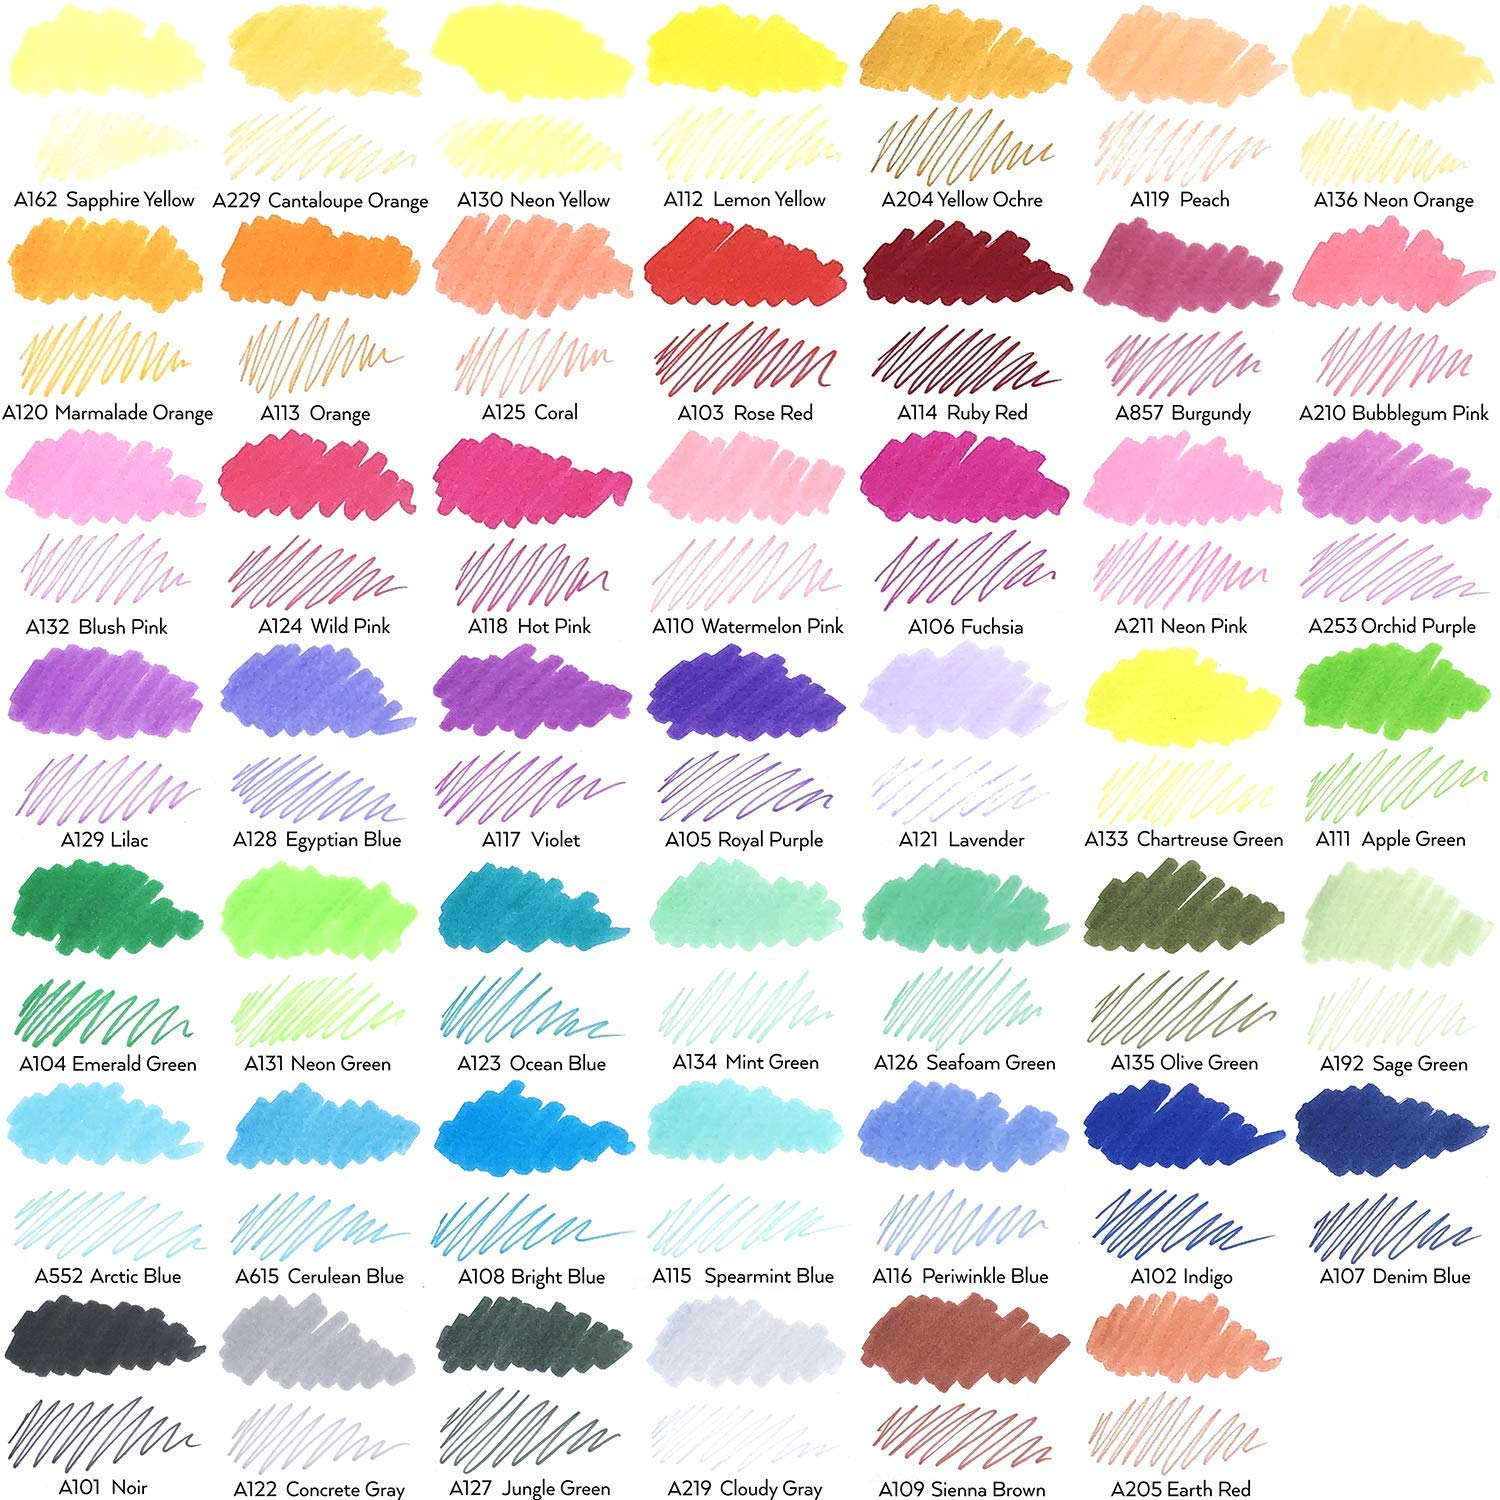 Journaling ARTEZA TwiMarkers Brush Pens Set of 100 Colors Drawing for Coloring with Fine /& Brush Tips Dual Tip Sketch Markers Sketching Calligraphy Hand Lettering /& Painting Doodling